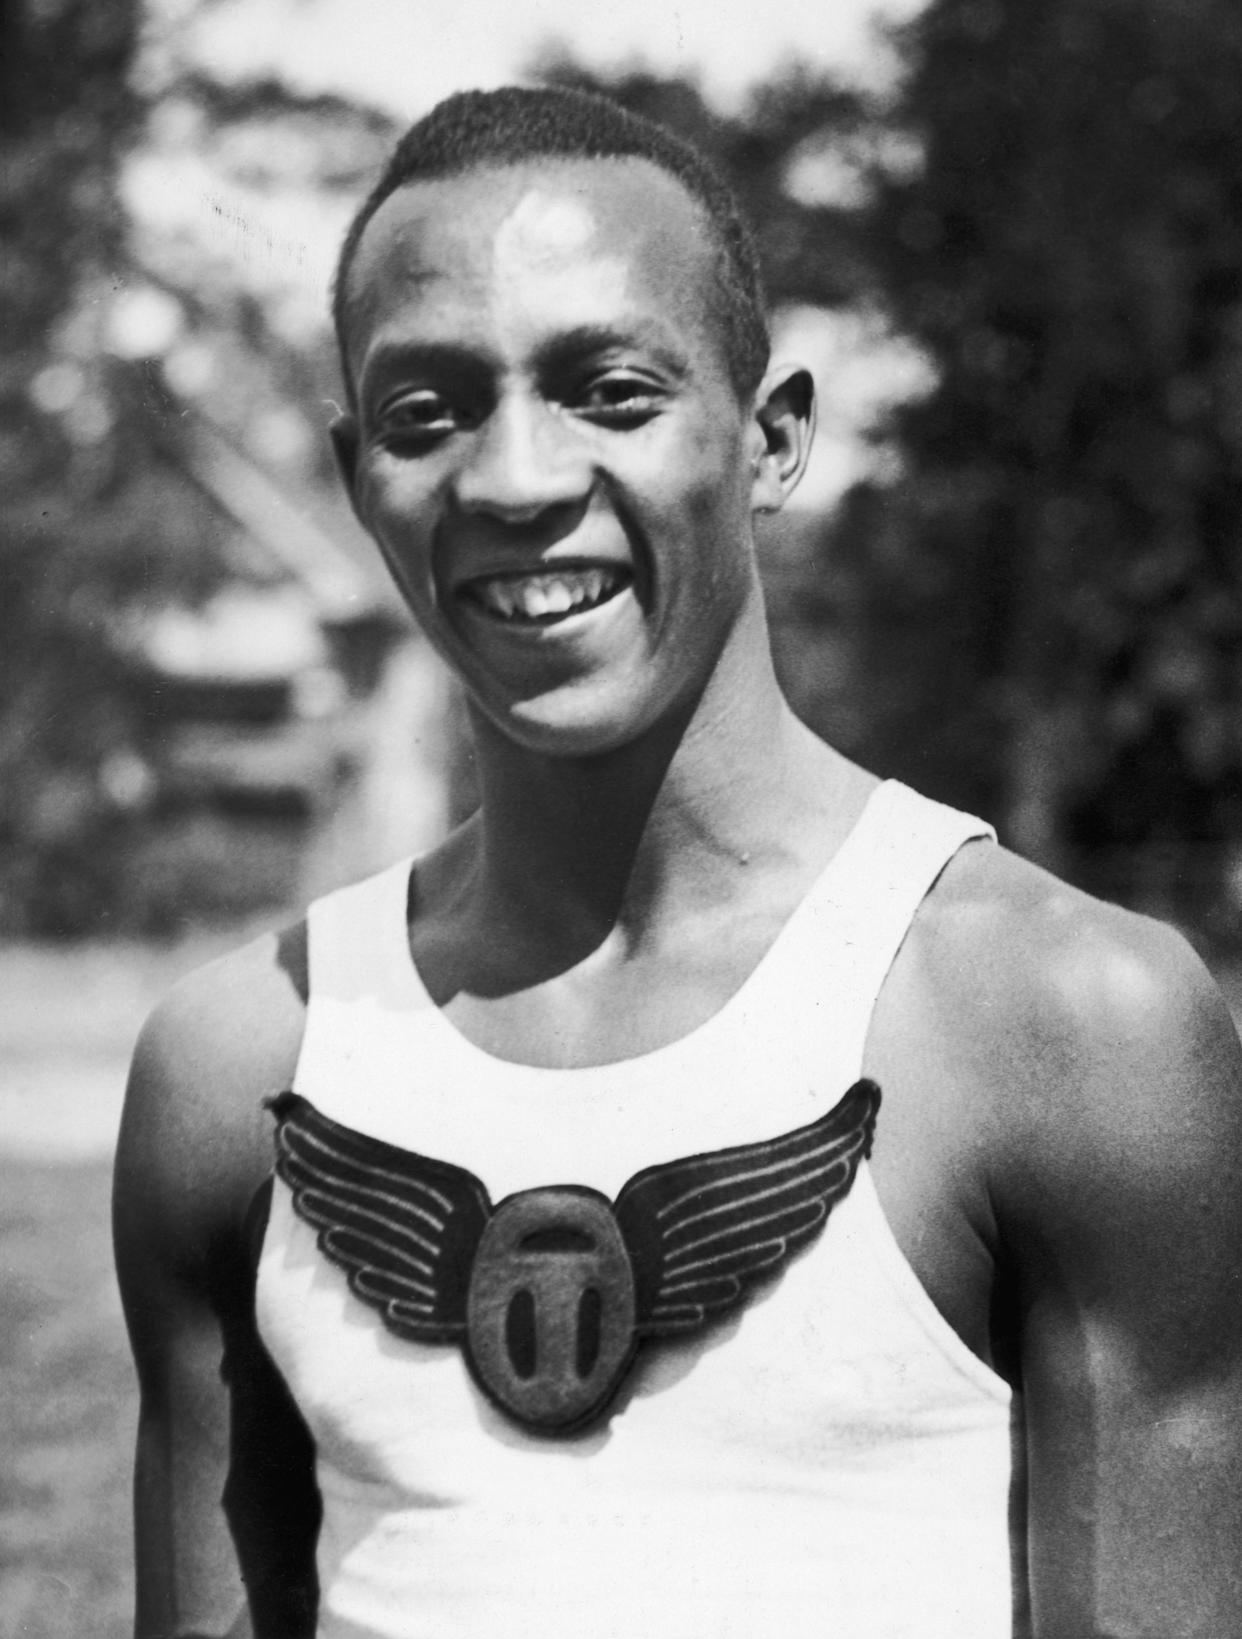 Jesse Owens (1913-1980) was well known as one of the greatest athletes of his generation. Photo: New York Times Co/Getty Images